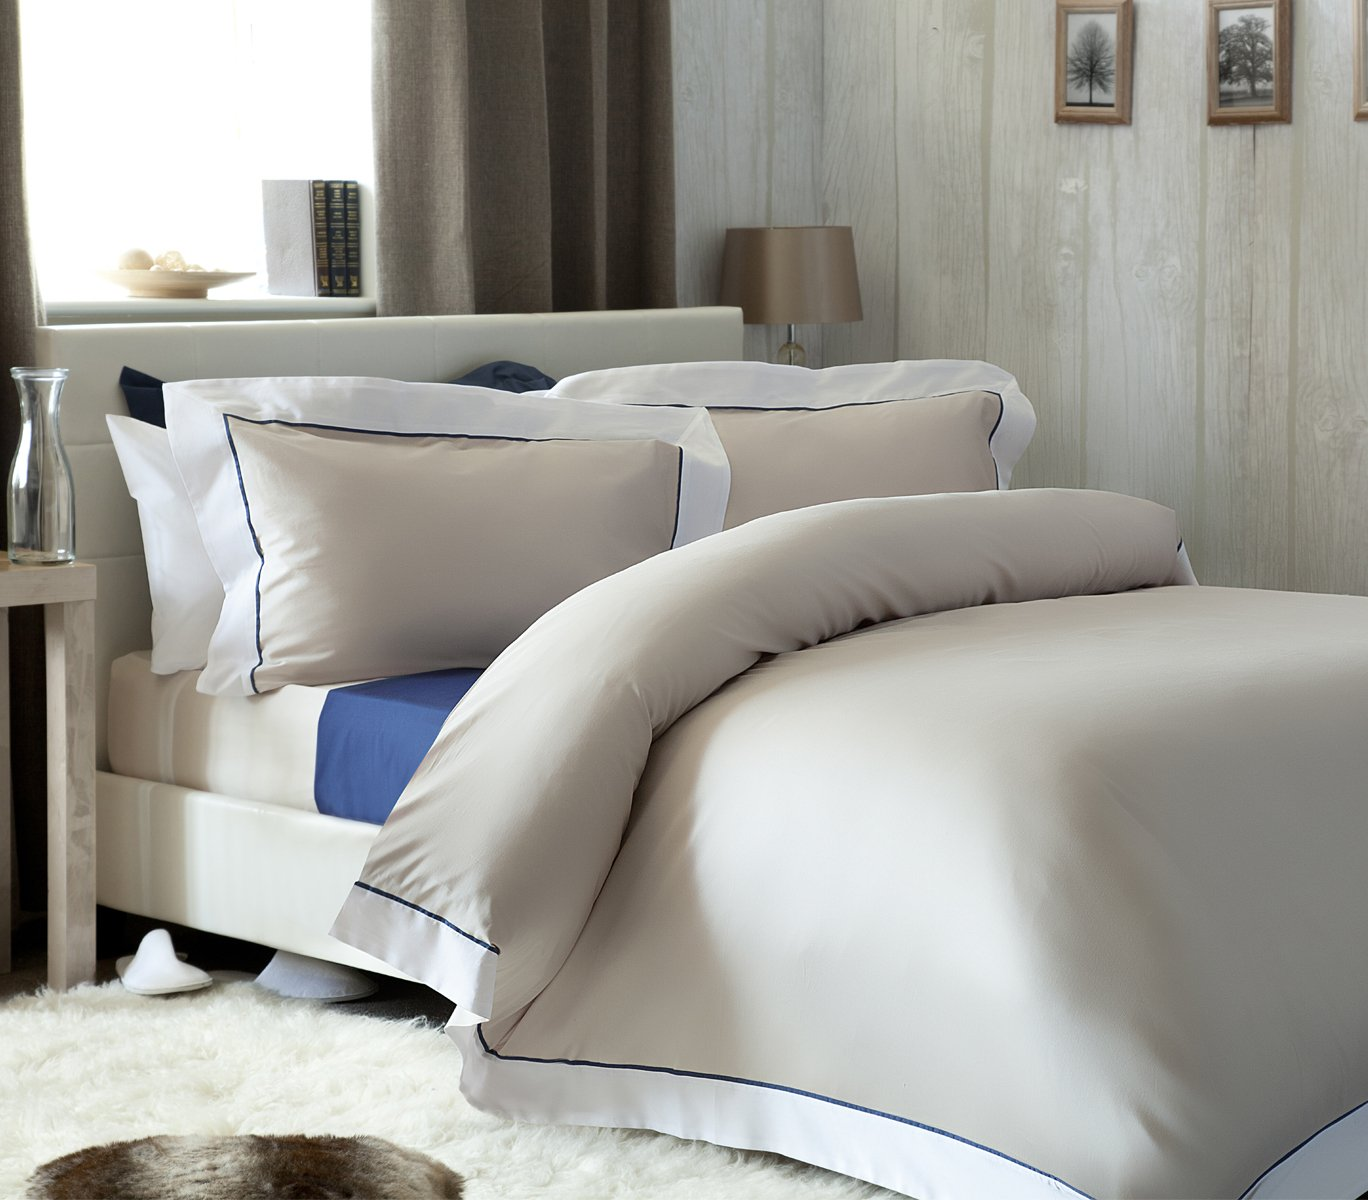 200 Thread Count Egyptian Cotton Bed Linen in Oyster All Sizes